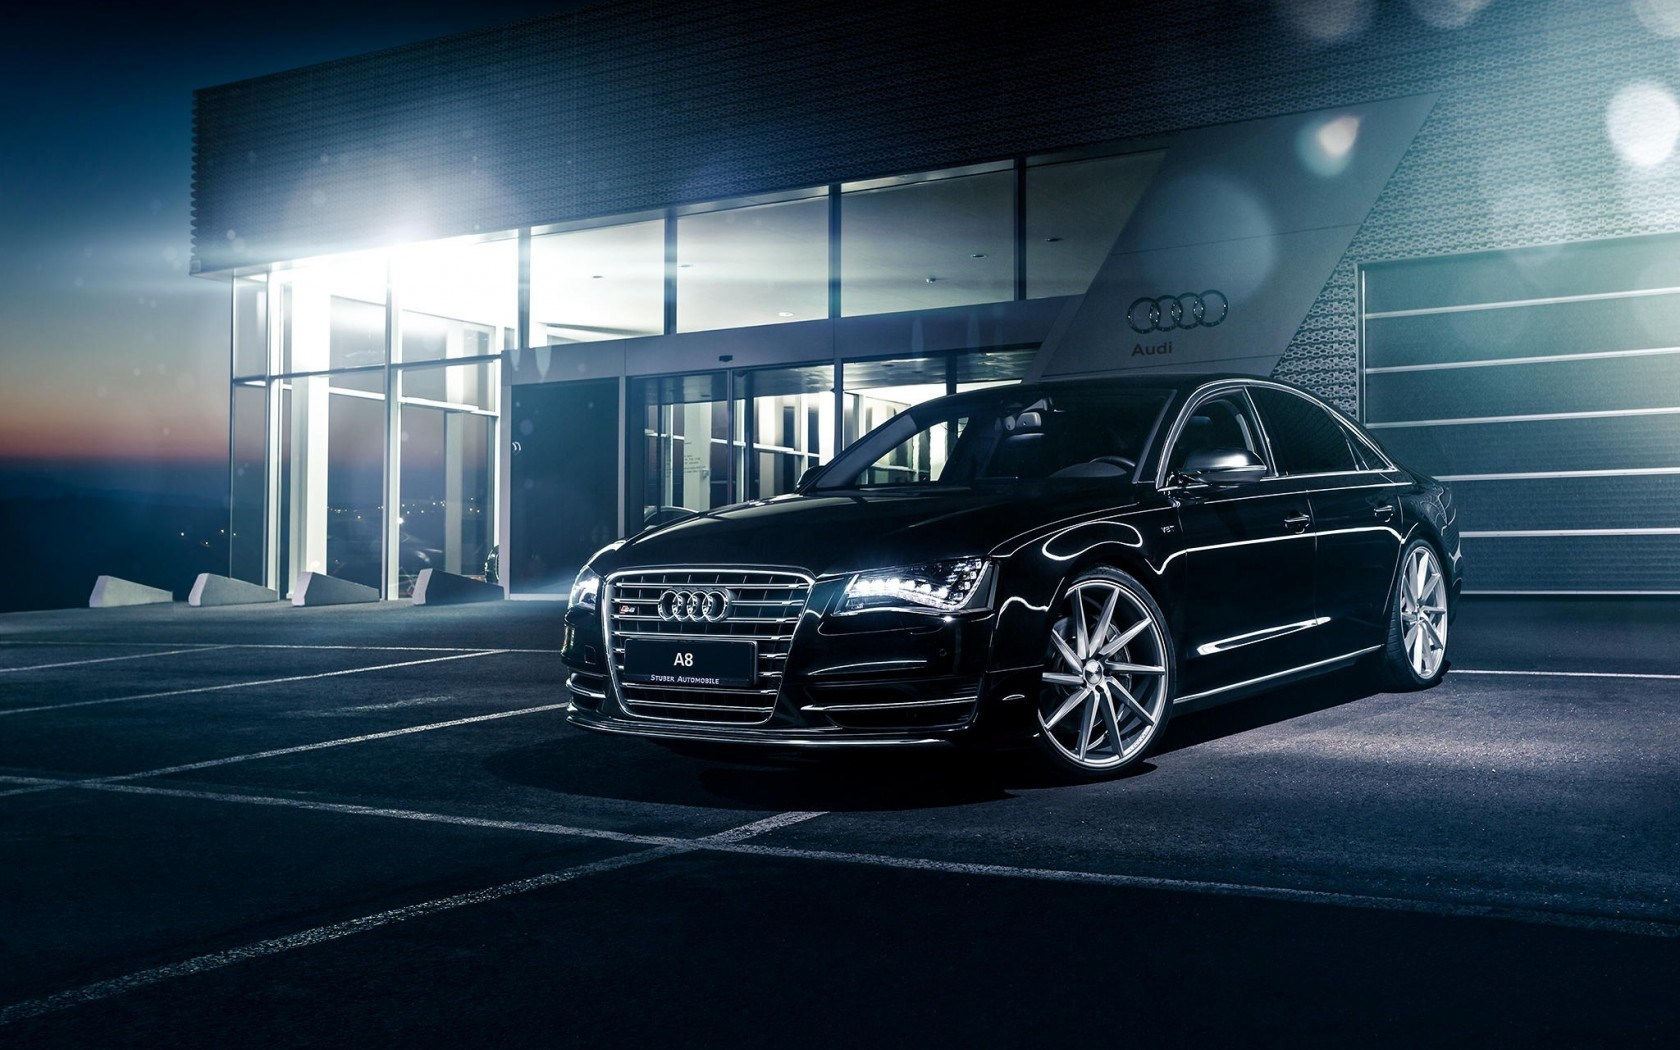 Audi A8 Wallpaper HD - WallpaperSafari